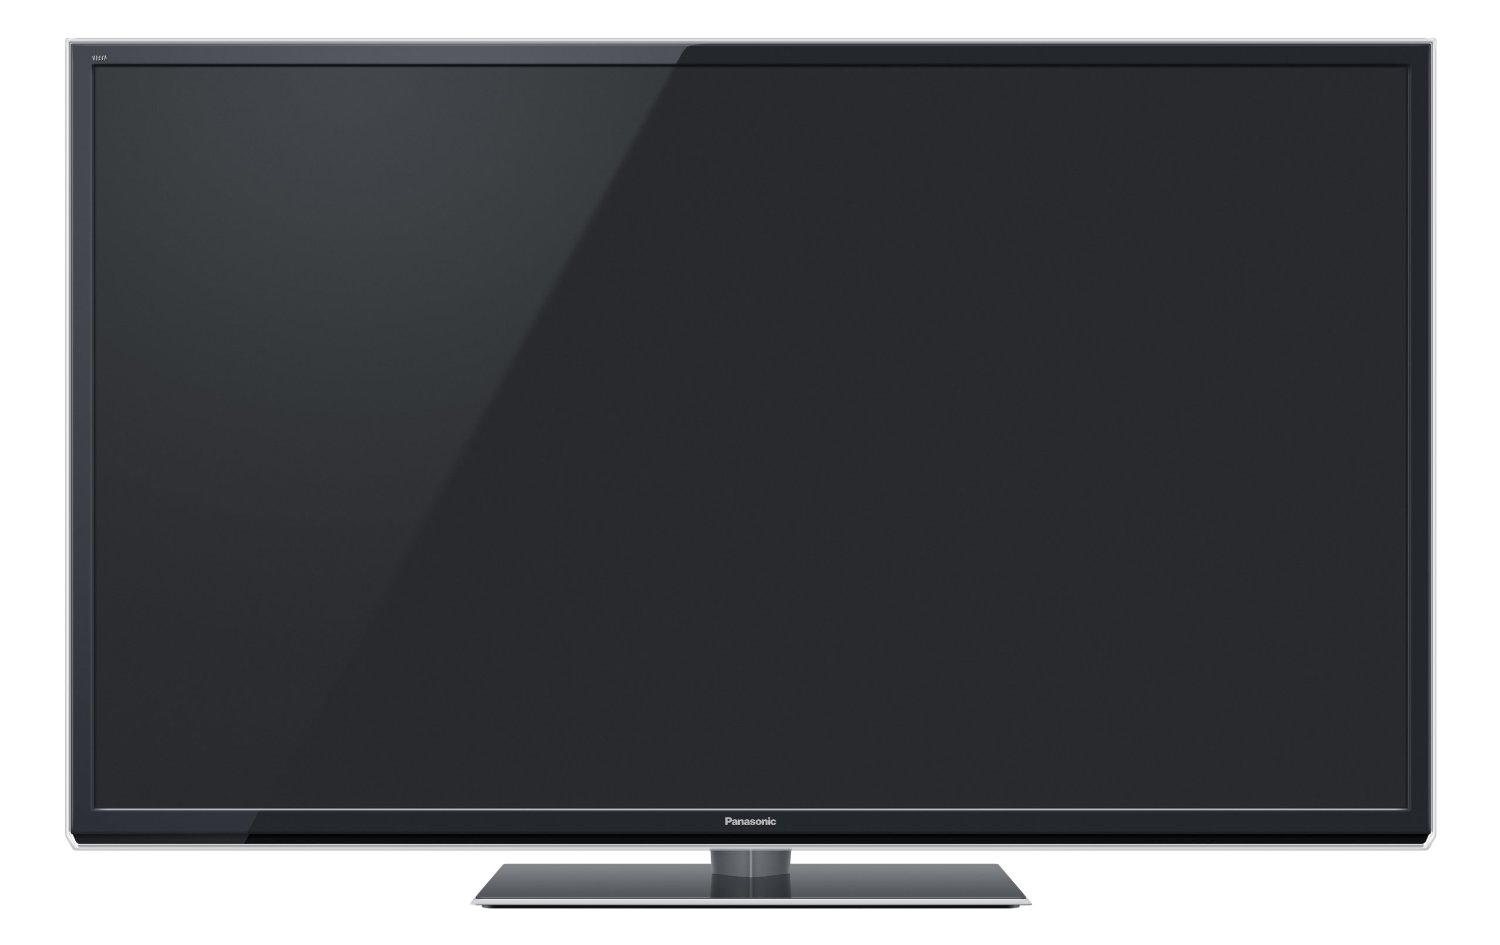 panasonic viera 50 inch series tc p50st50 review bestbuy panasonic viera 50 inch series tc. Black Bedroom Furniture Sets. Home Design Ideas